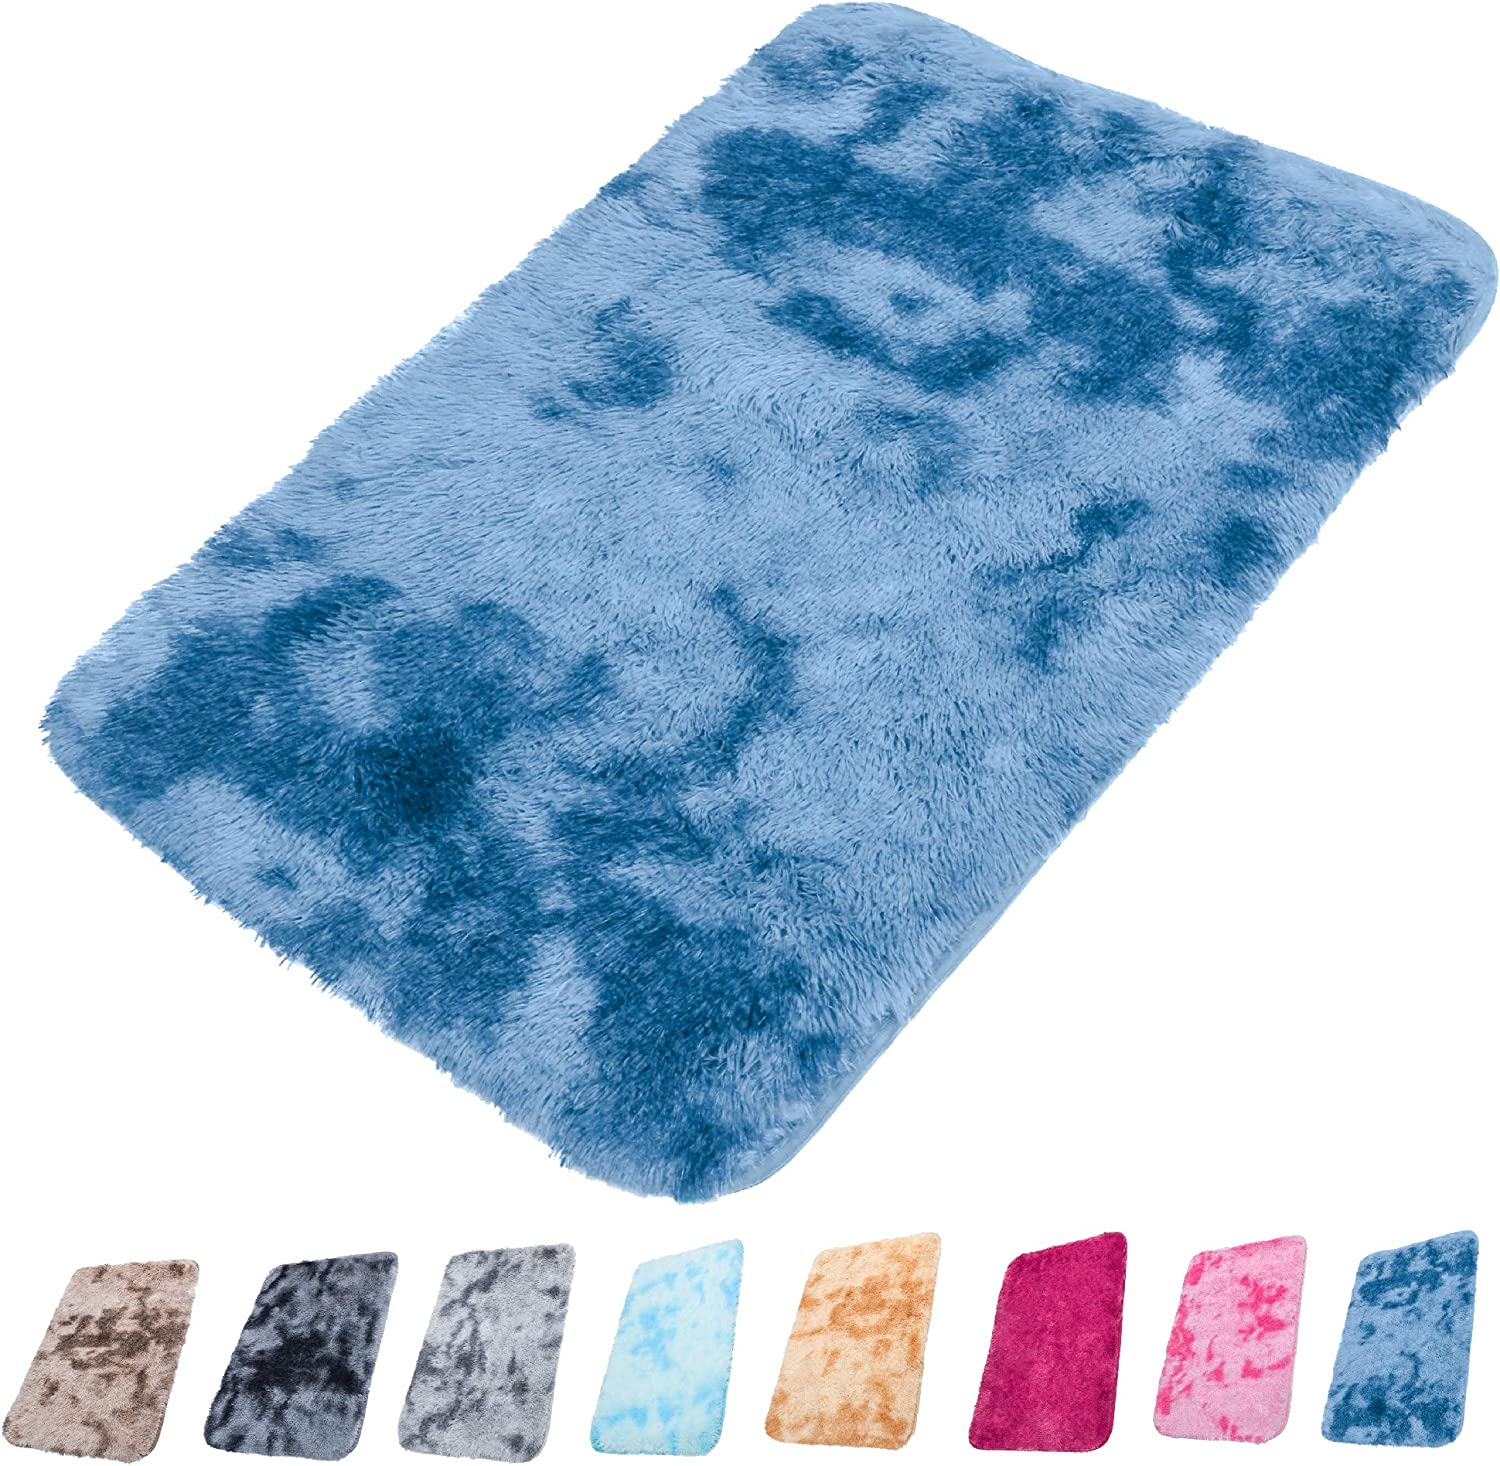 Orgrimmar Ultra Soft Indoor Modern Carpet Silky Smooth Rugs Living Room Area Rugs Suitable for Children Play Home Decorator Floor Bedroom Carpet (2'x3', Navy Blue Tie Dye)